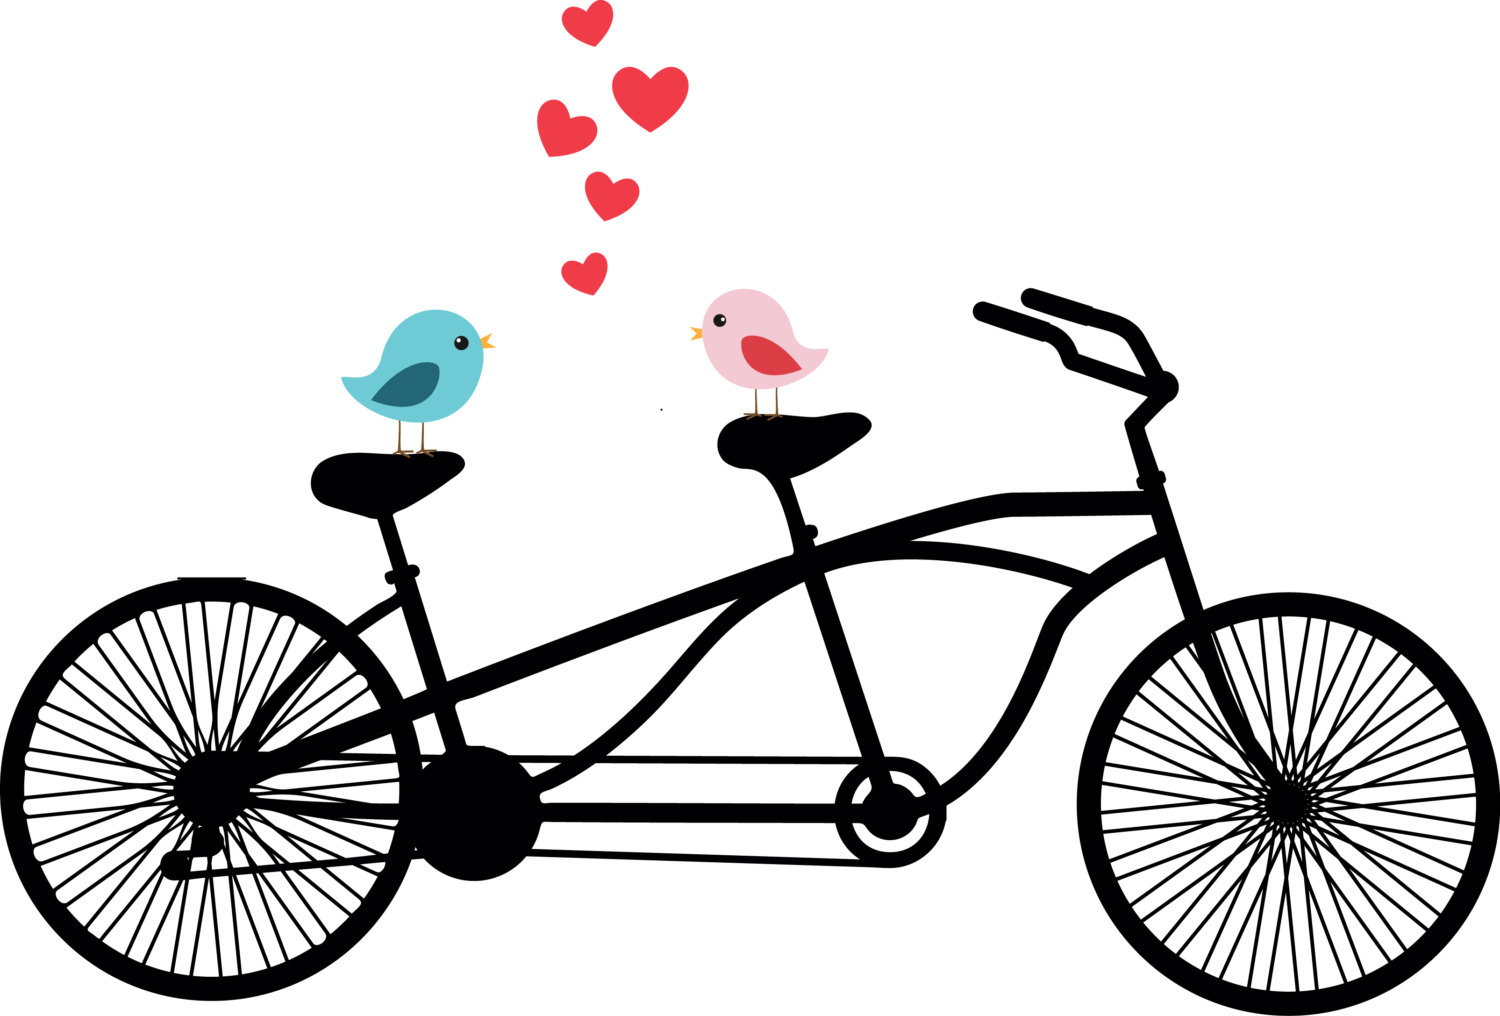 Bike clip art bicycle clipart 2 clipartwiz.